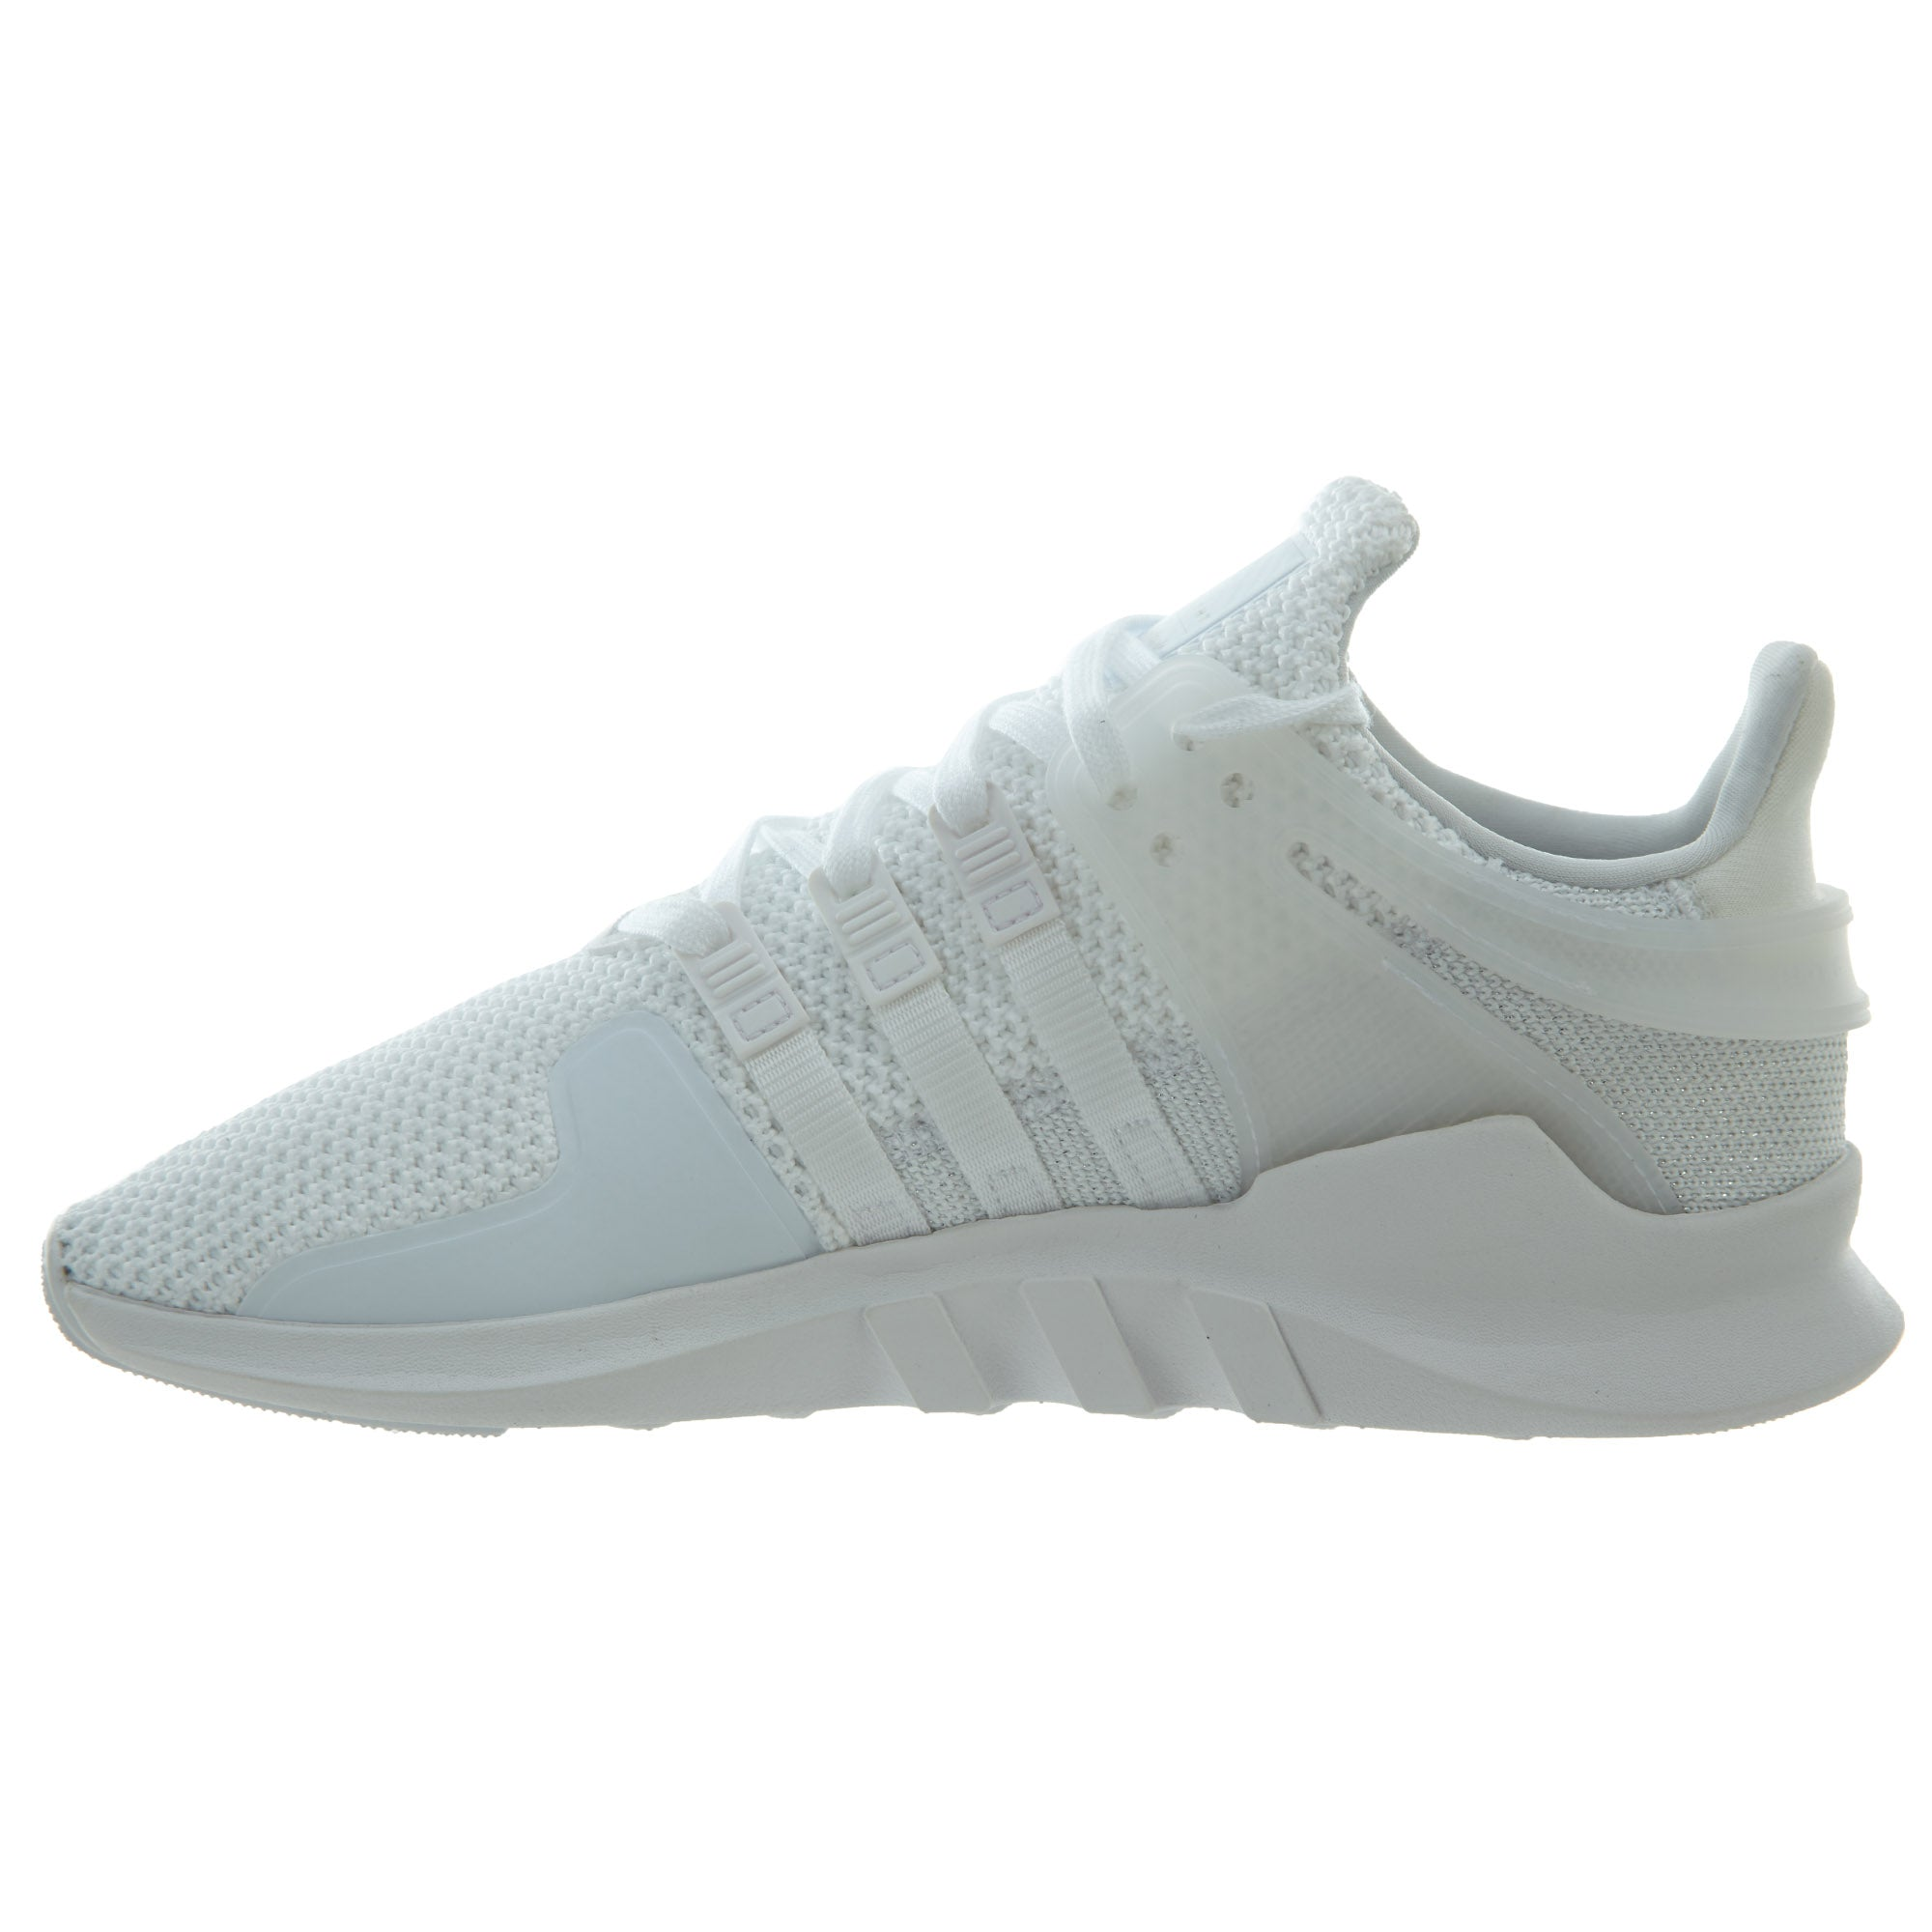 Adidas Eqt Support Adv Womens Style : Aq0916